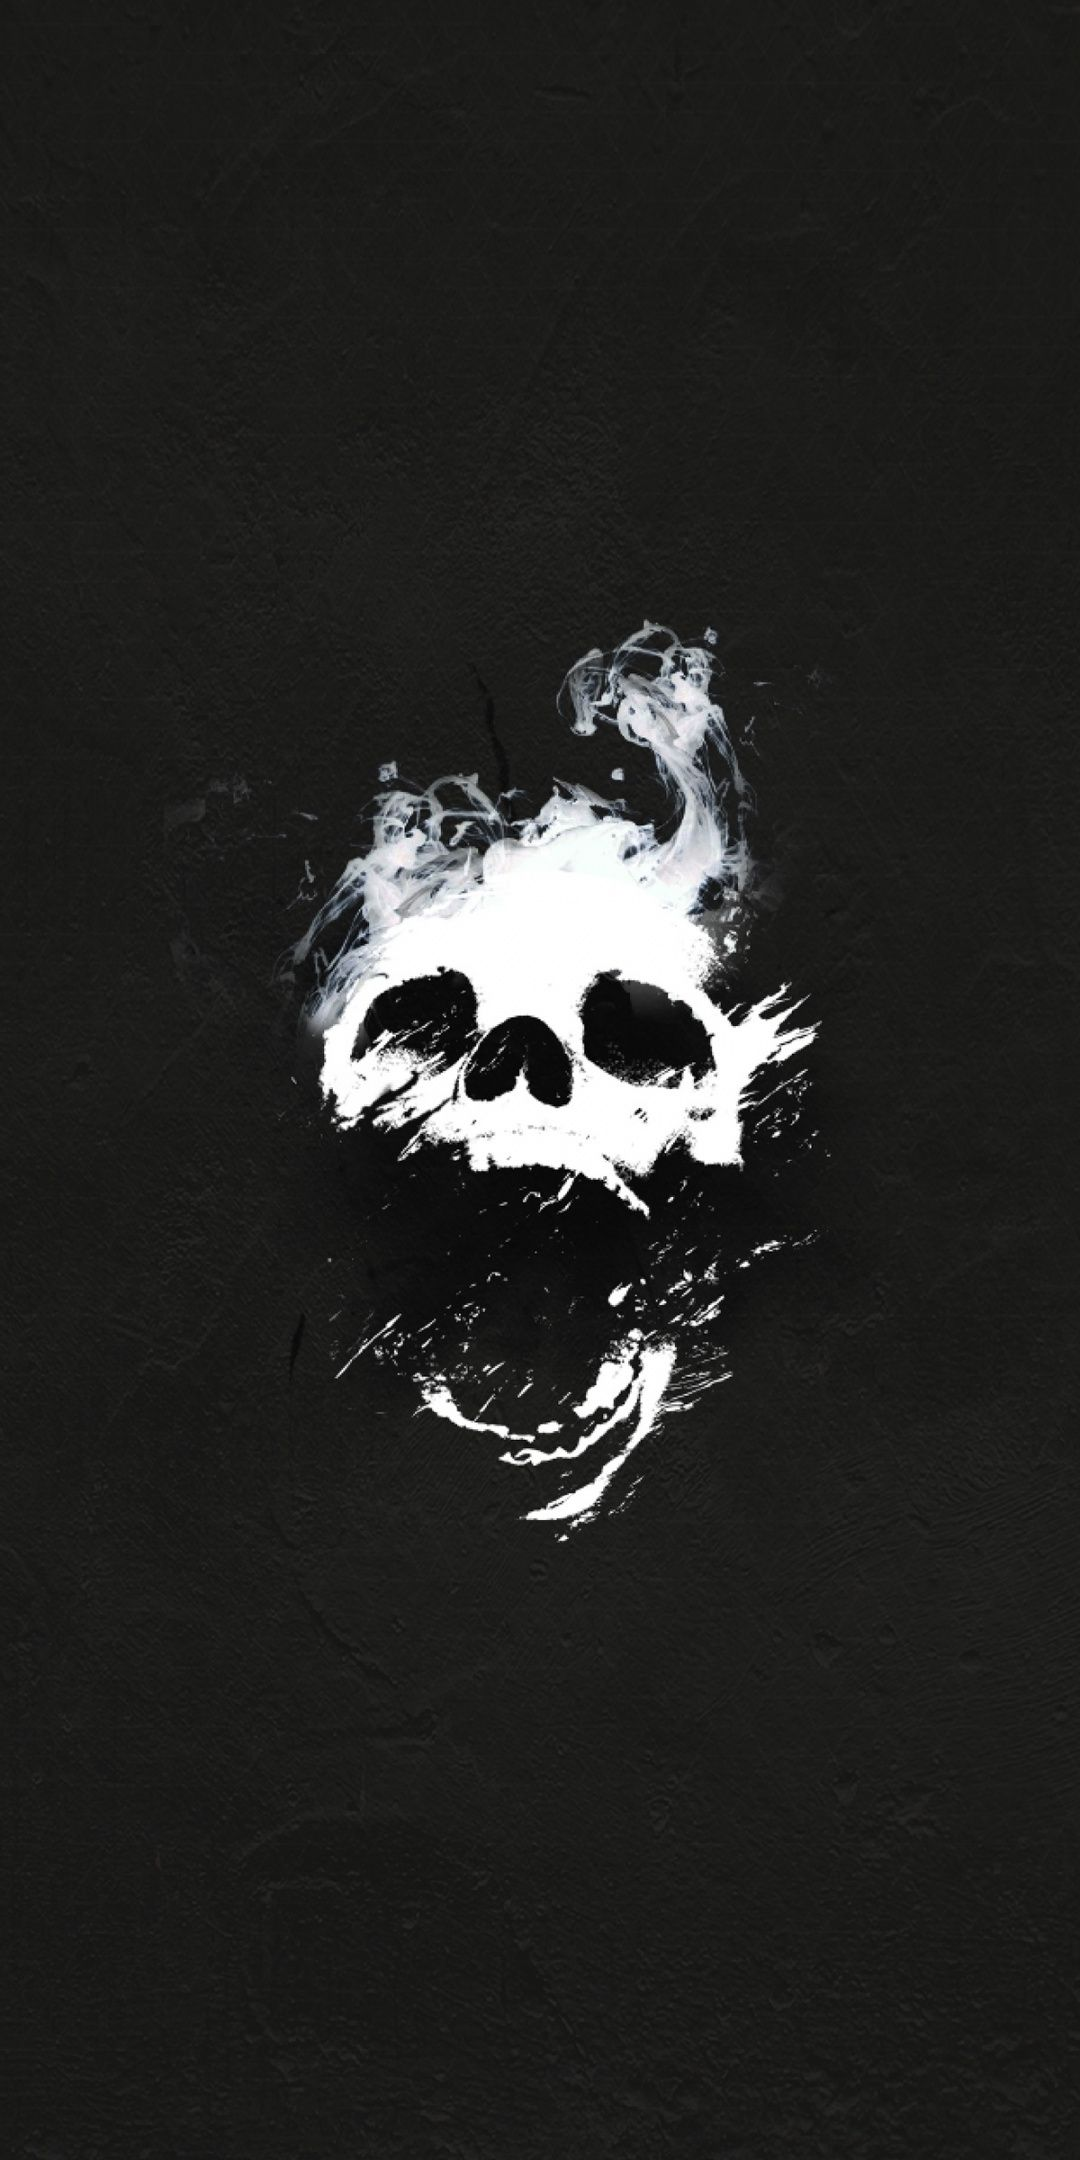 Skull Destiny 2 minimal 2019 game Wallpaper Video Game 1080x2160